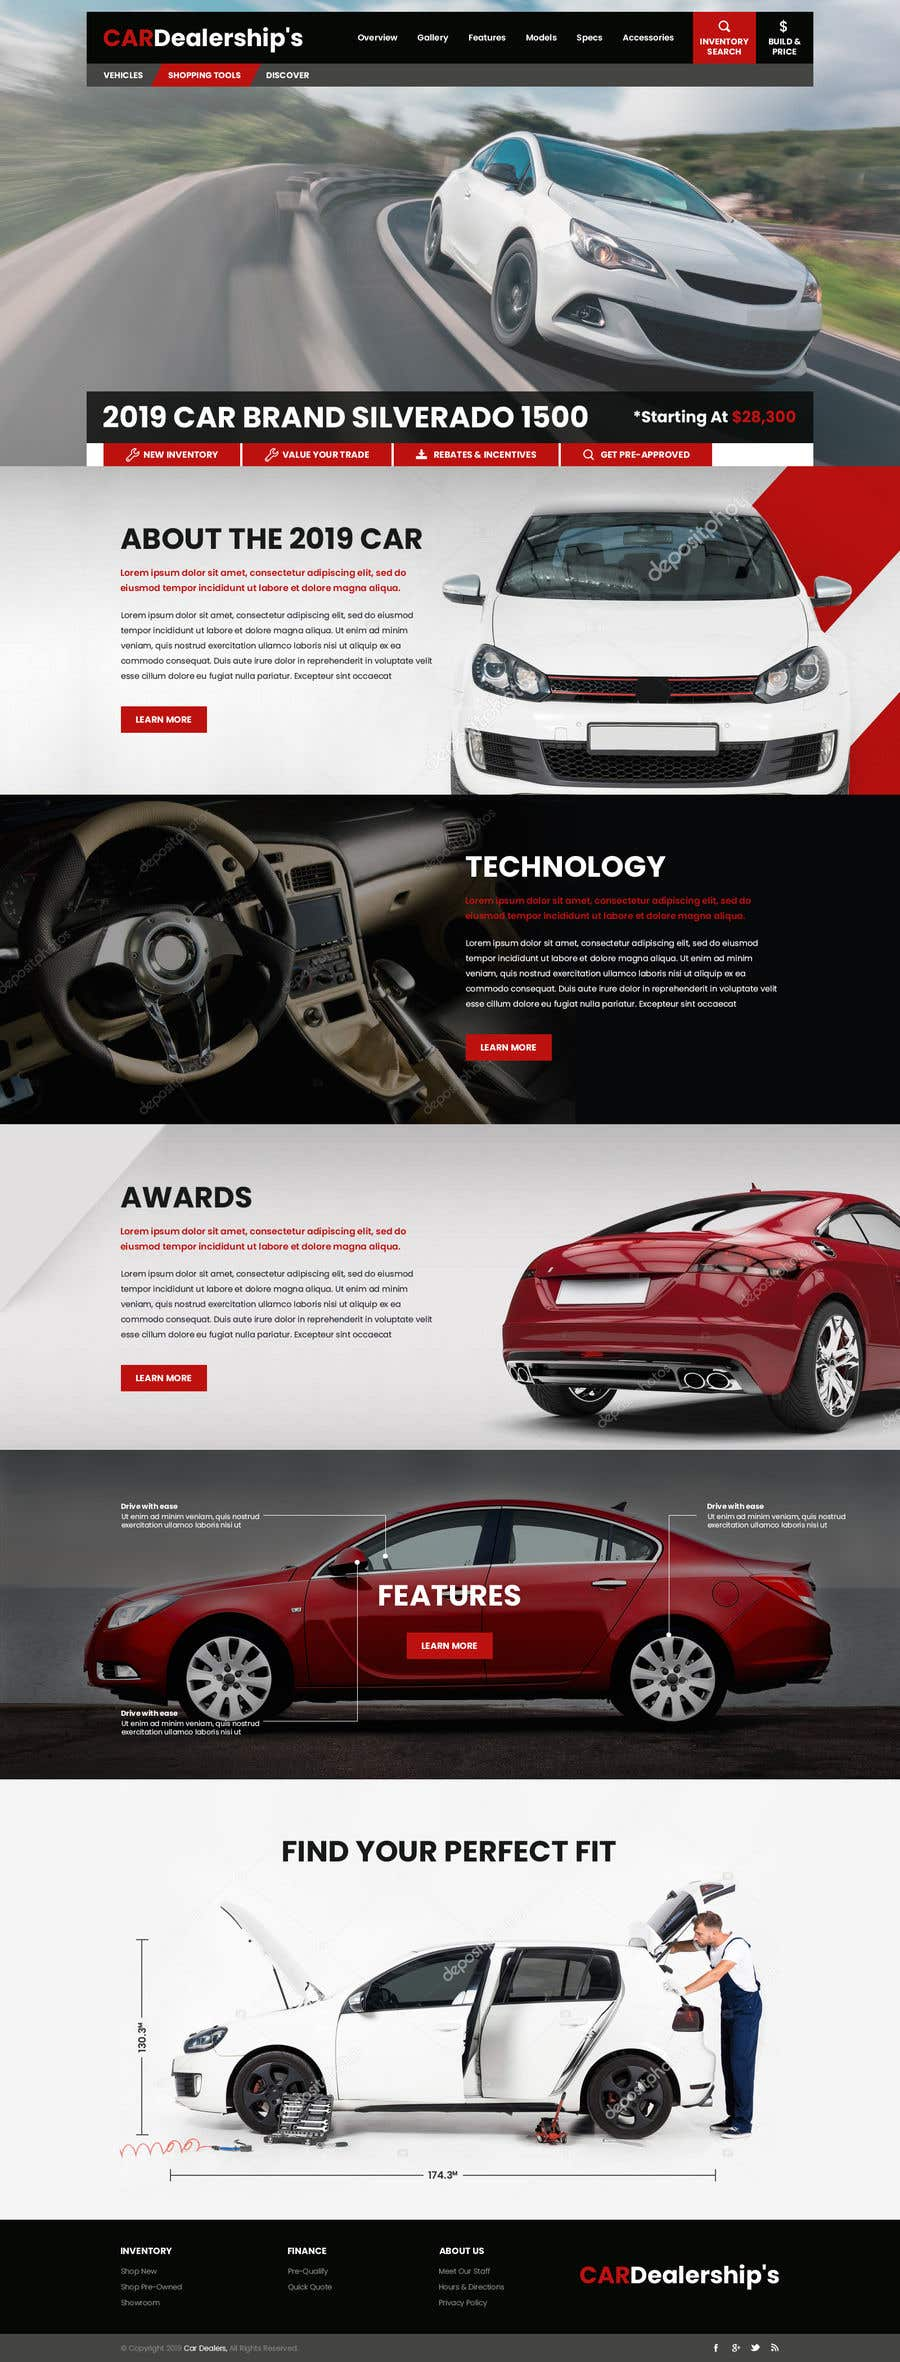 Contest Entry #47 for Design a landing page in PSD for a car dealer's website.